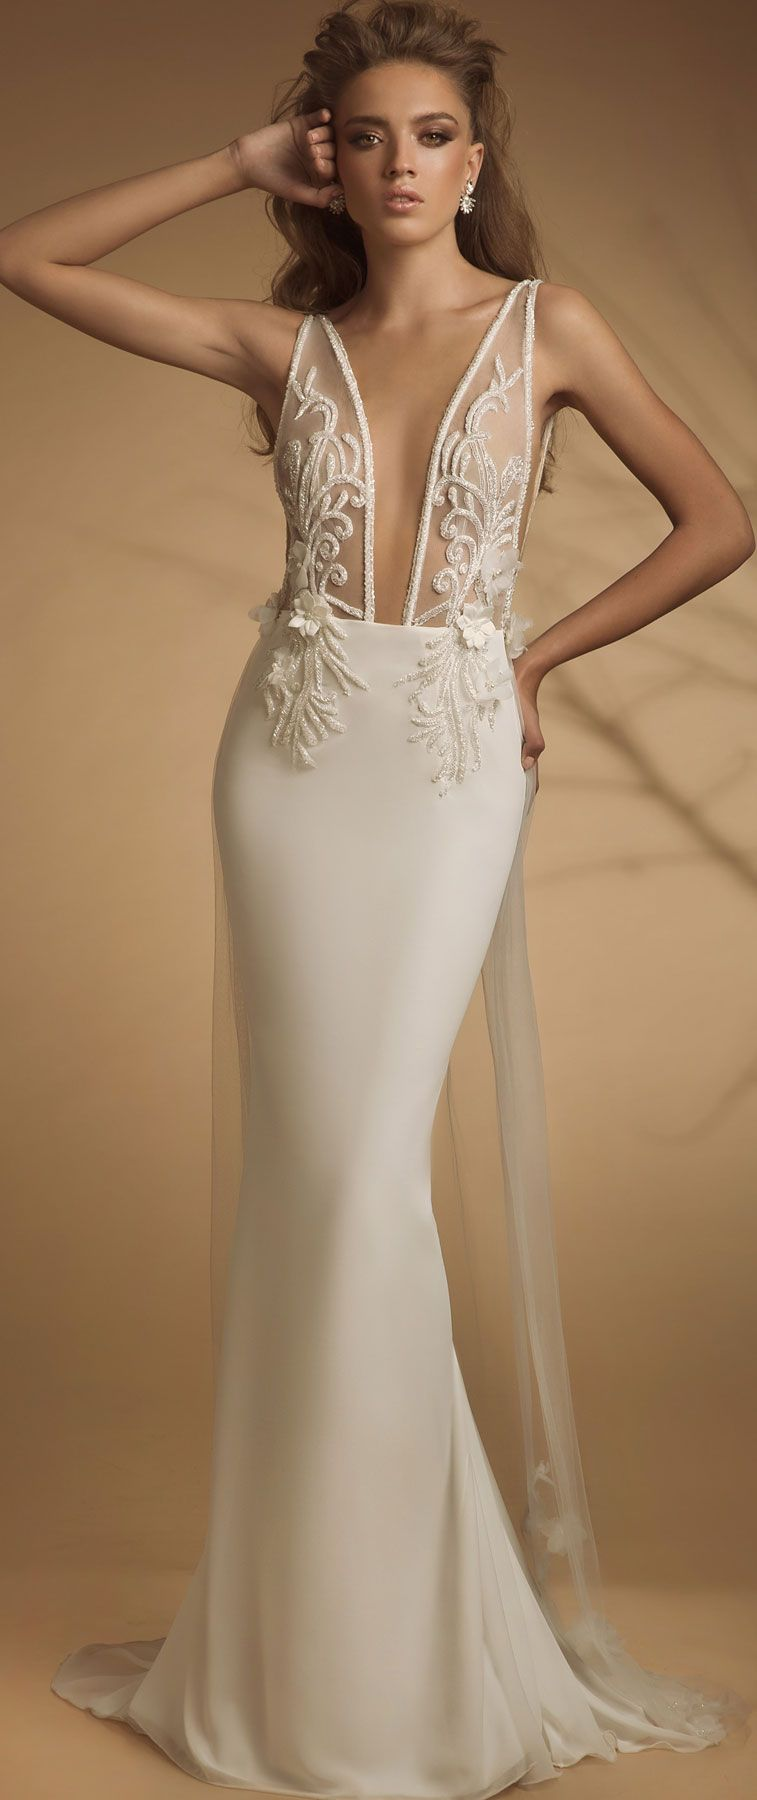 Eliran Araha 2018 Wedding Dresses